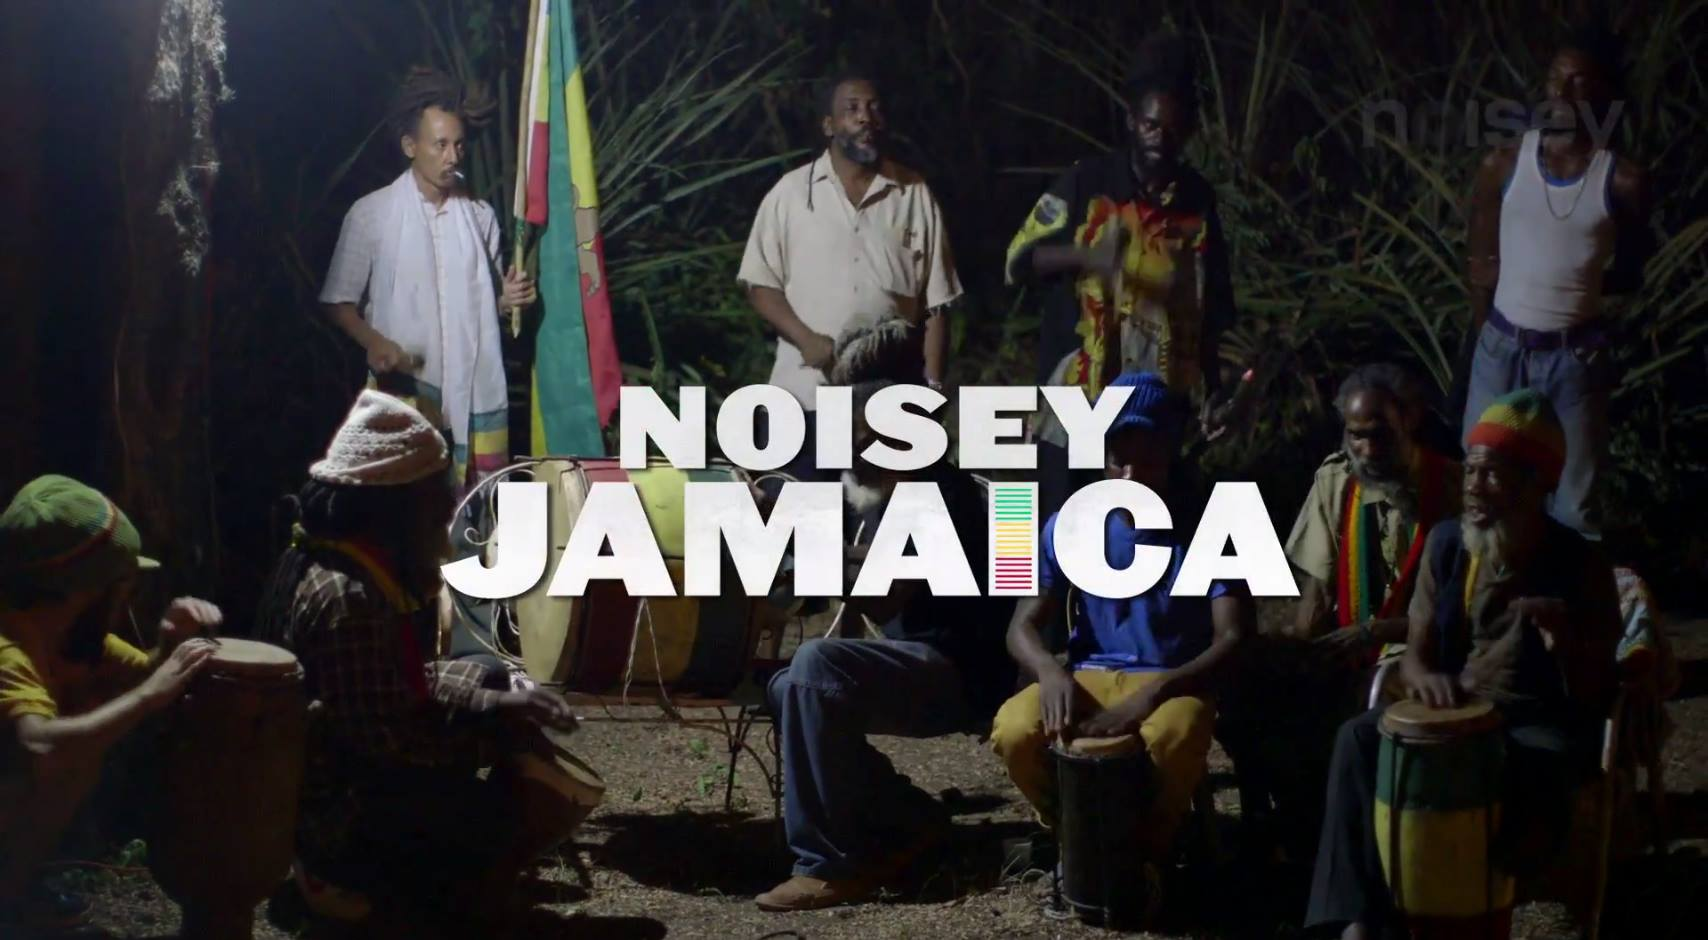 Noisey introduces #NoiseyJamaica II with appearances by Walshy Fire, Chronixx, Jesse Royal, Protoje, Jah9, Keznamdi & more! #ReggaeRevival